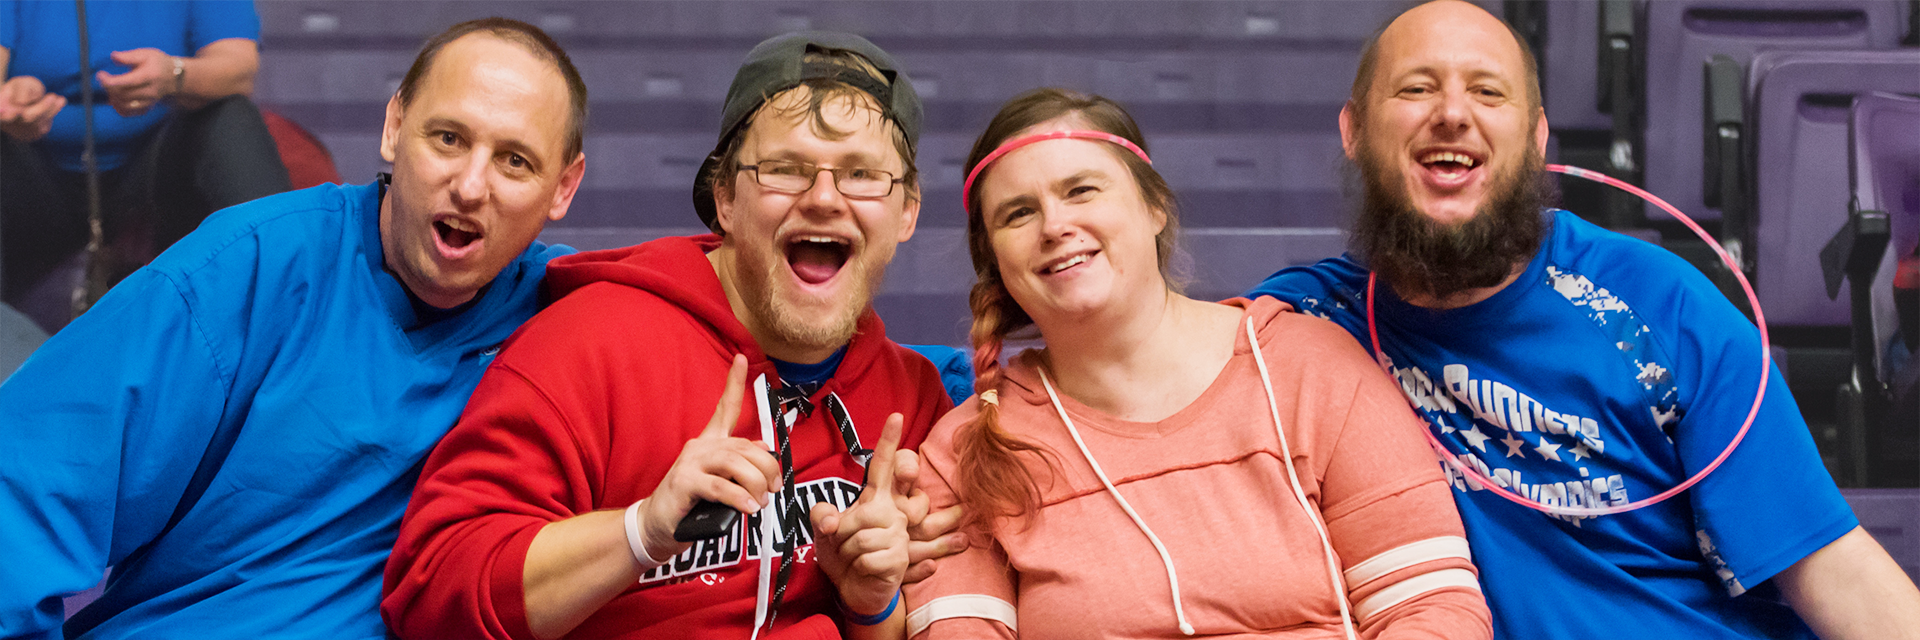 Four Special Olympics Minnesota athletes smile enthusiastically at the camera